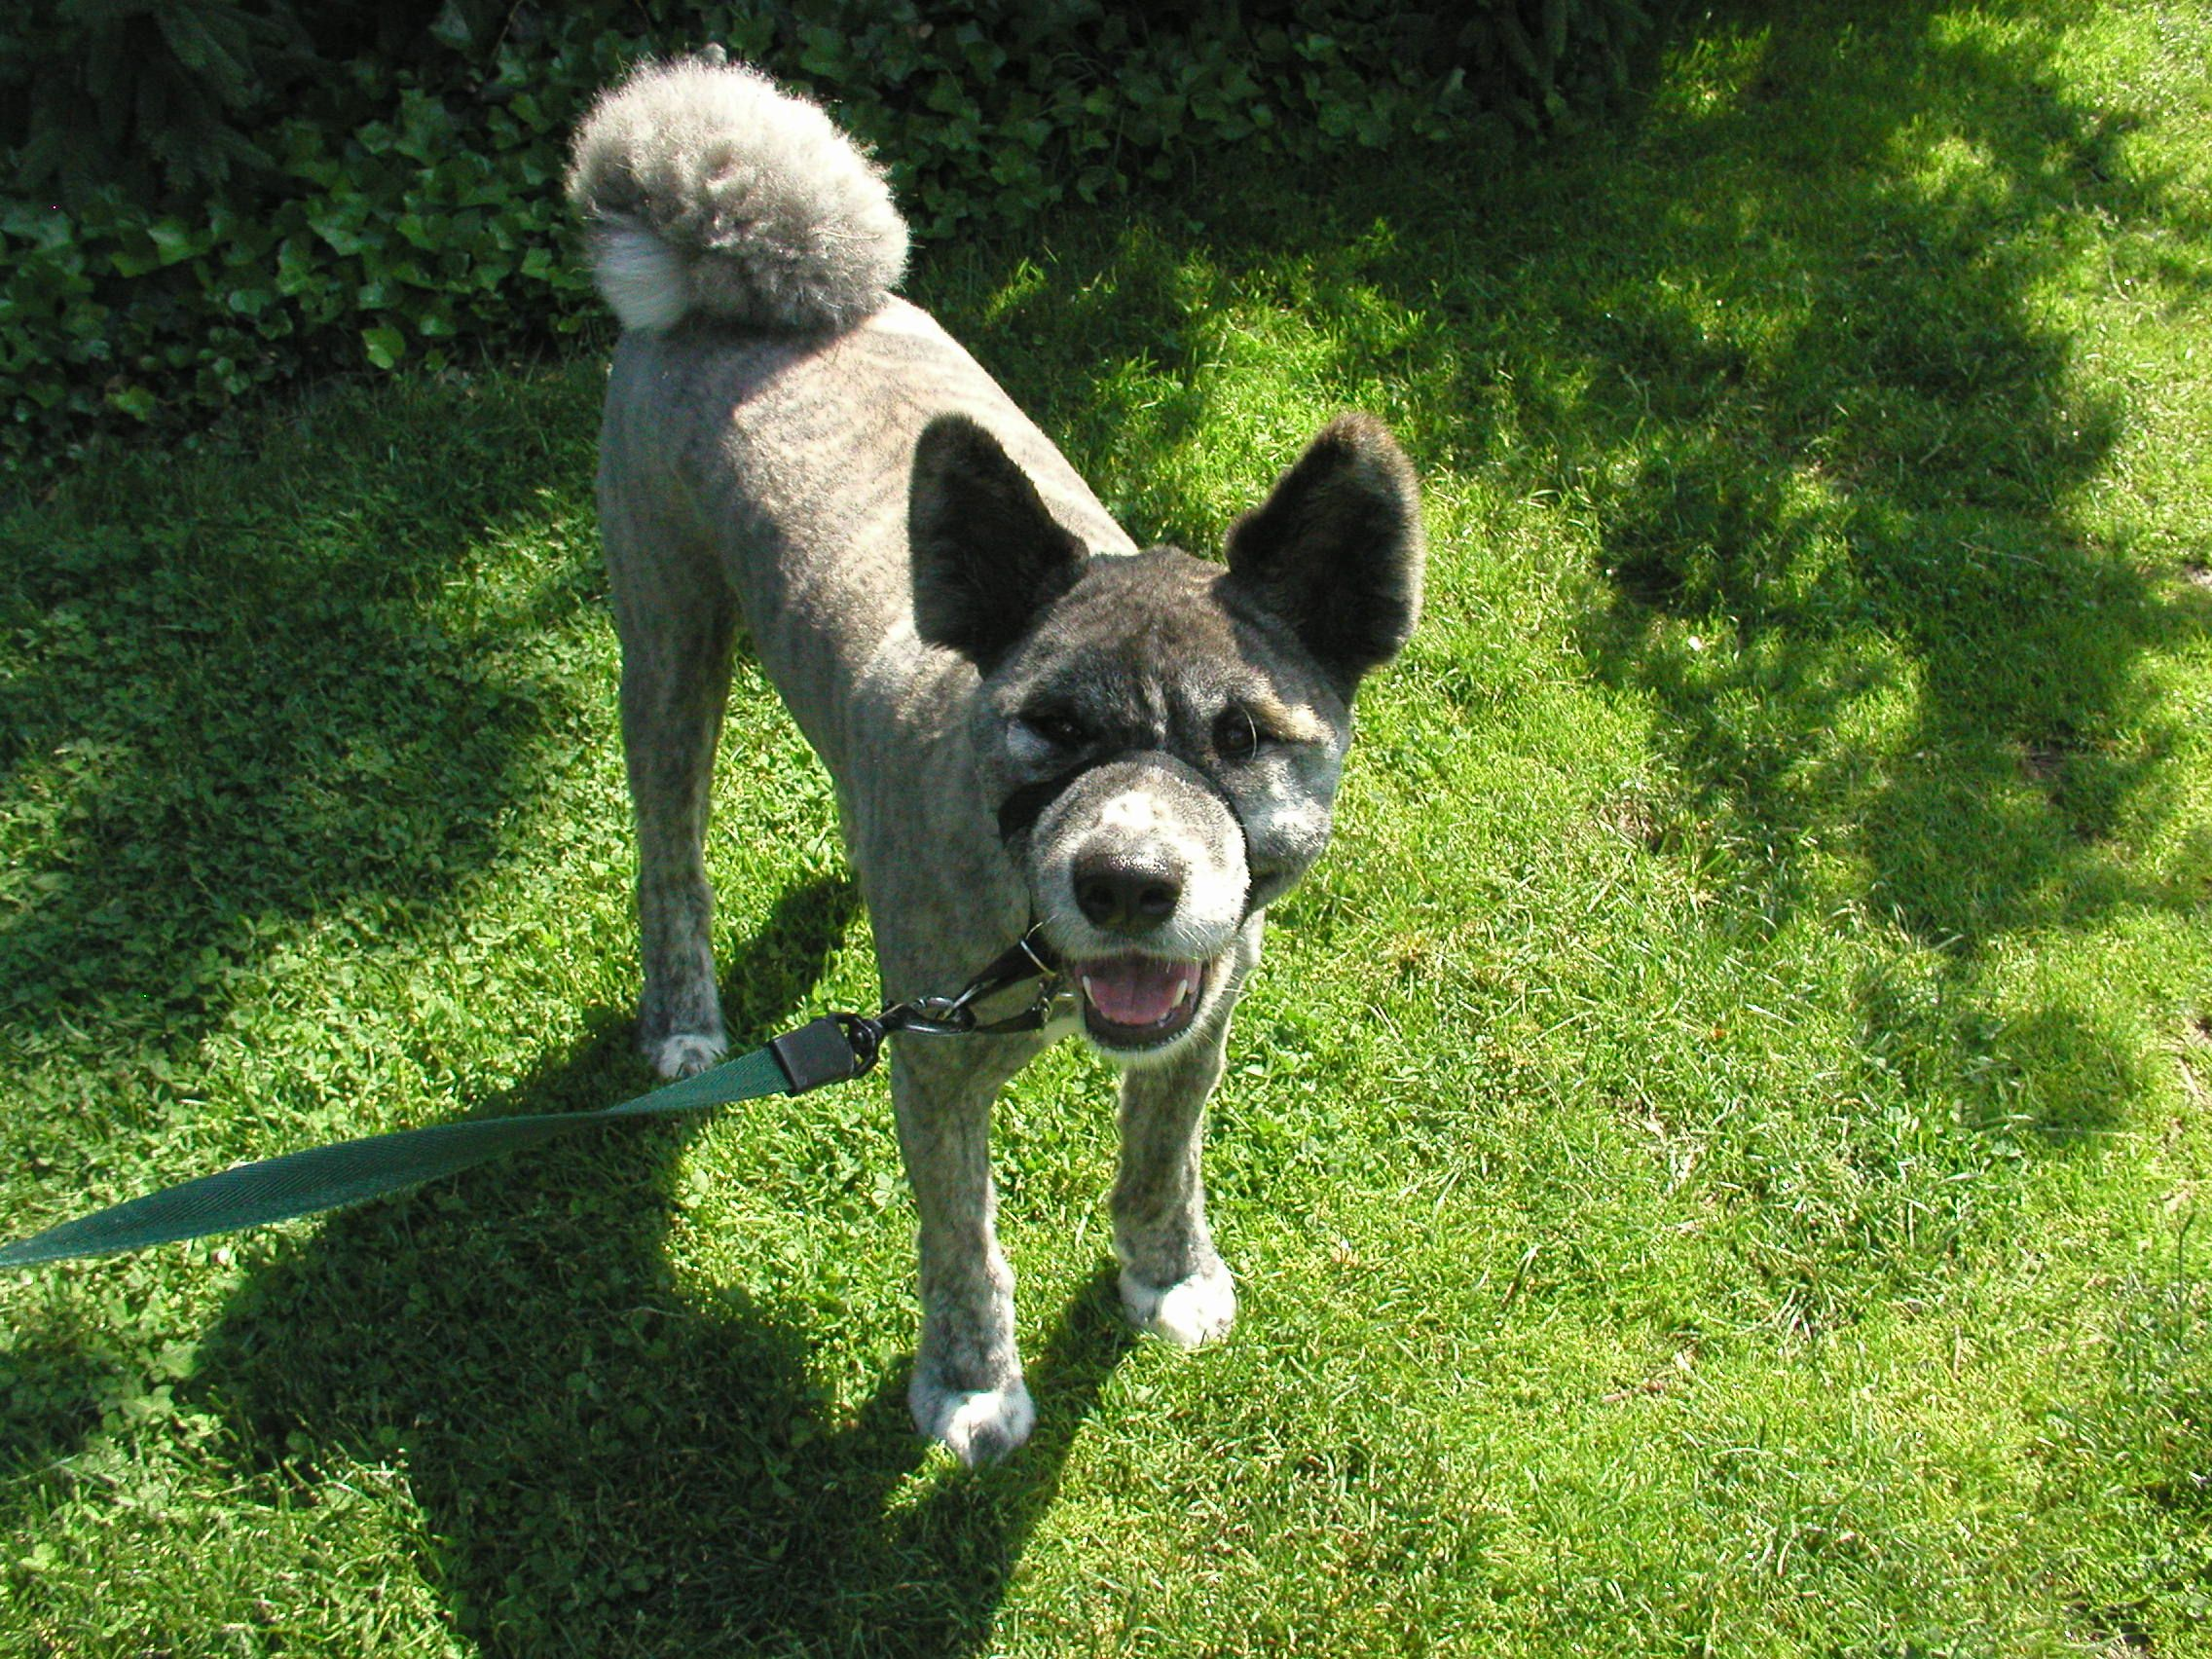 File:Brindle Moku Akita Inu - Clipped Fur - on Grass.jpg - Wikimedia ...